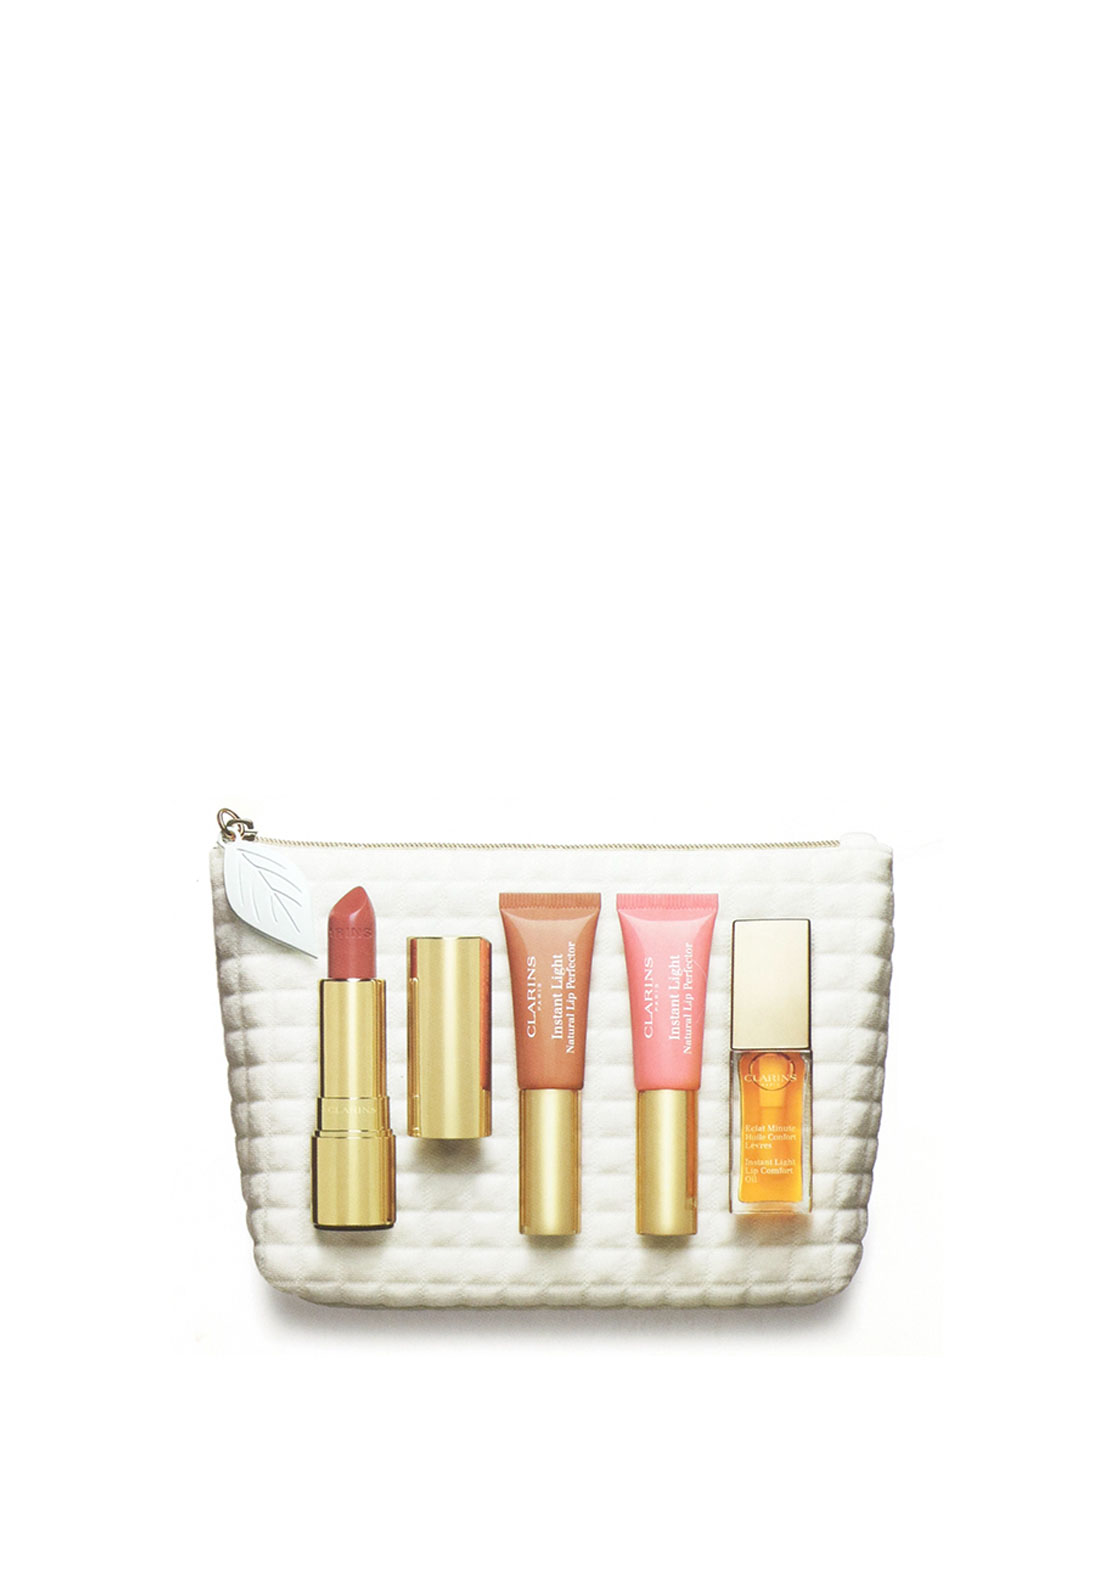 Clarins Christmas Luscious Lips Collection Gift Set